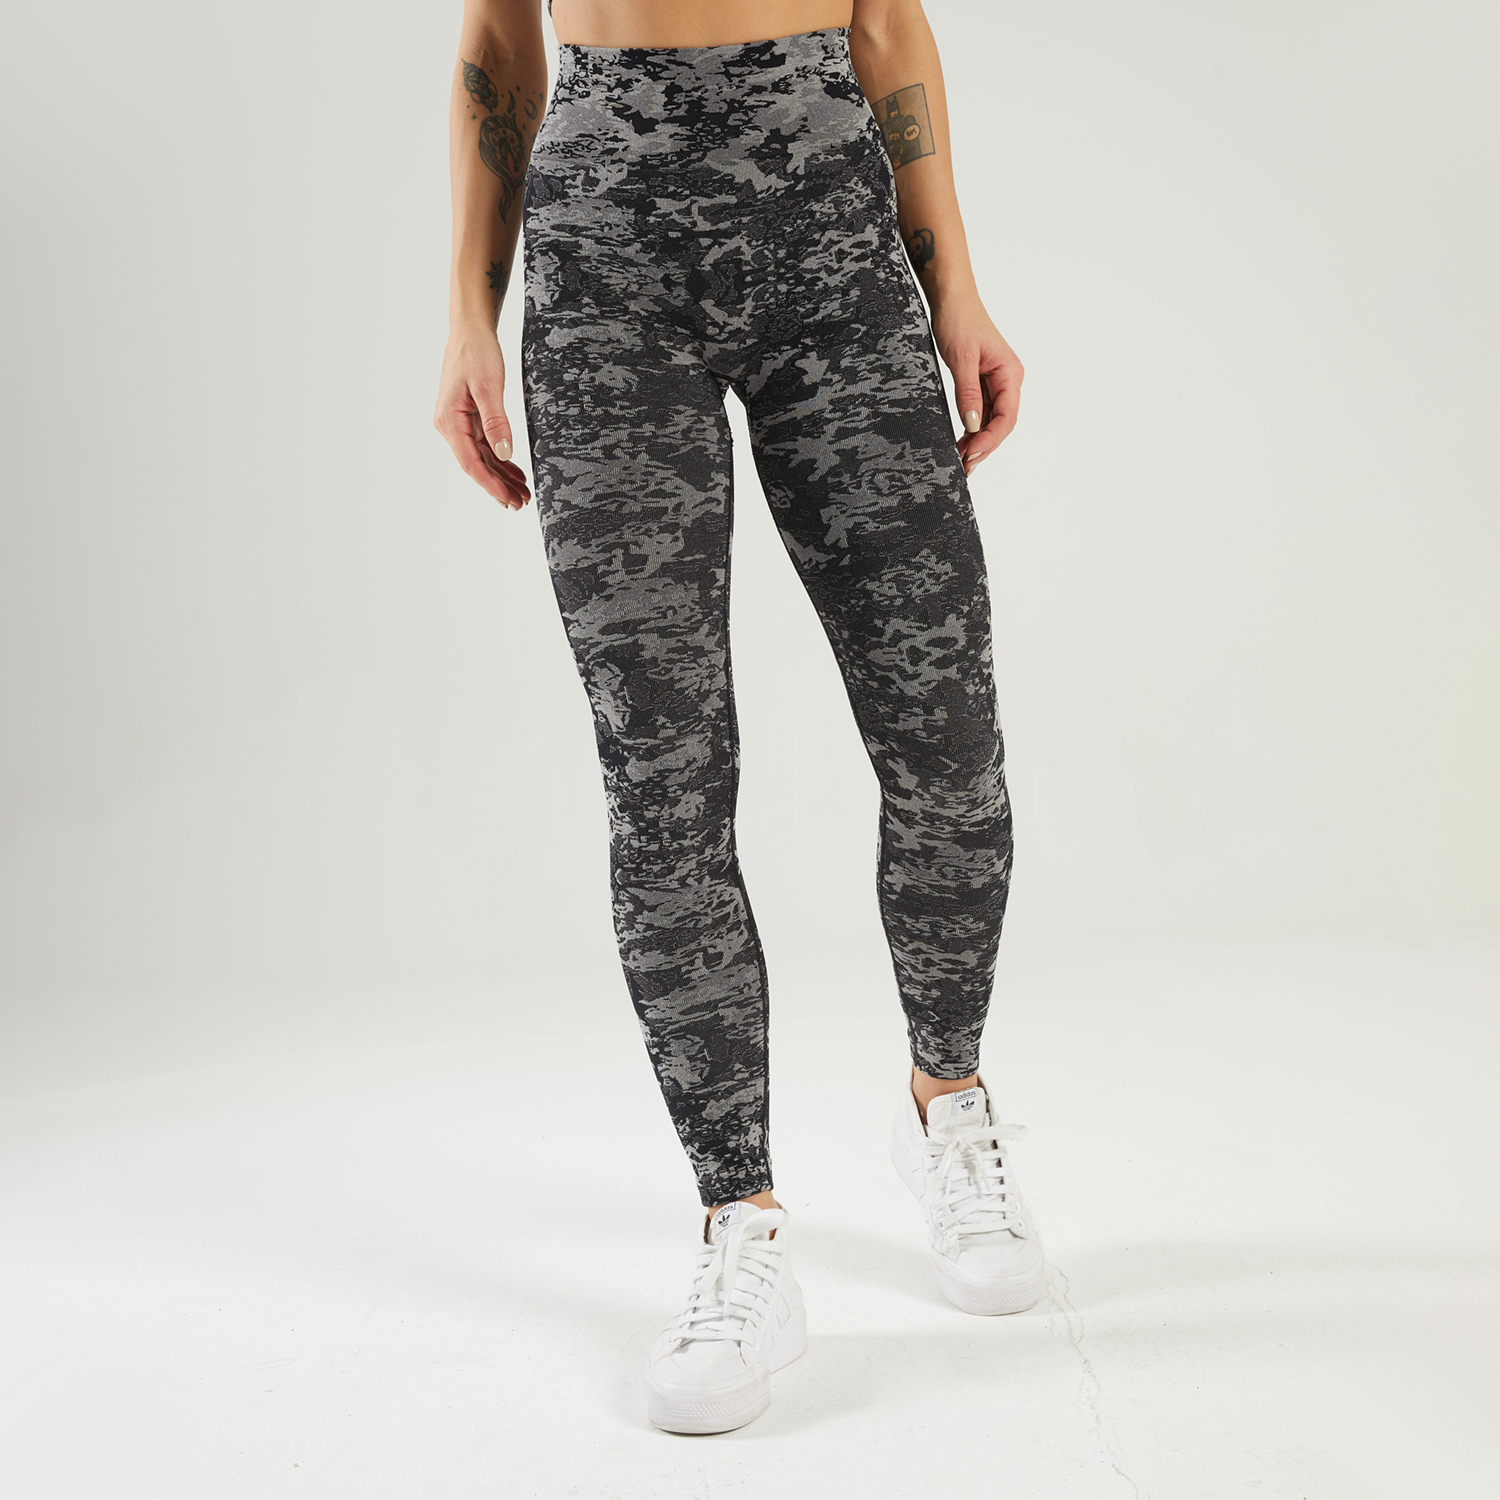 2021 Camouflage Camo Seamless Yoga Pants Push Up Leggings For Women Fitness Yoga Legging High Waist Sports Tight Workout Leggins